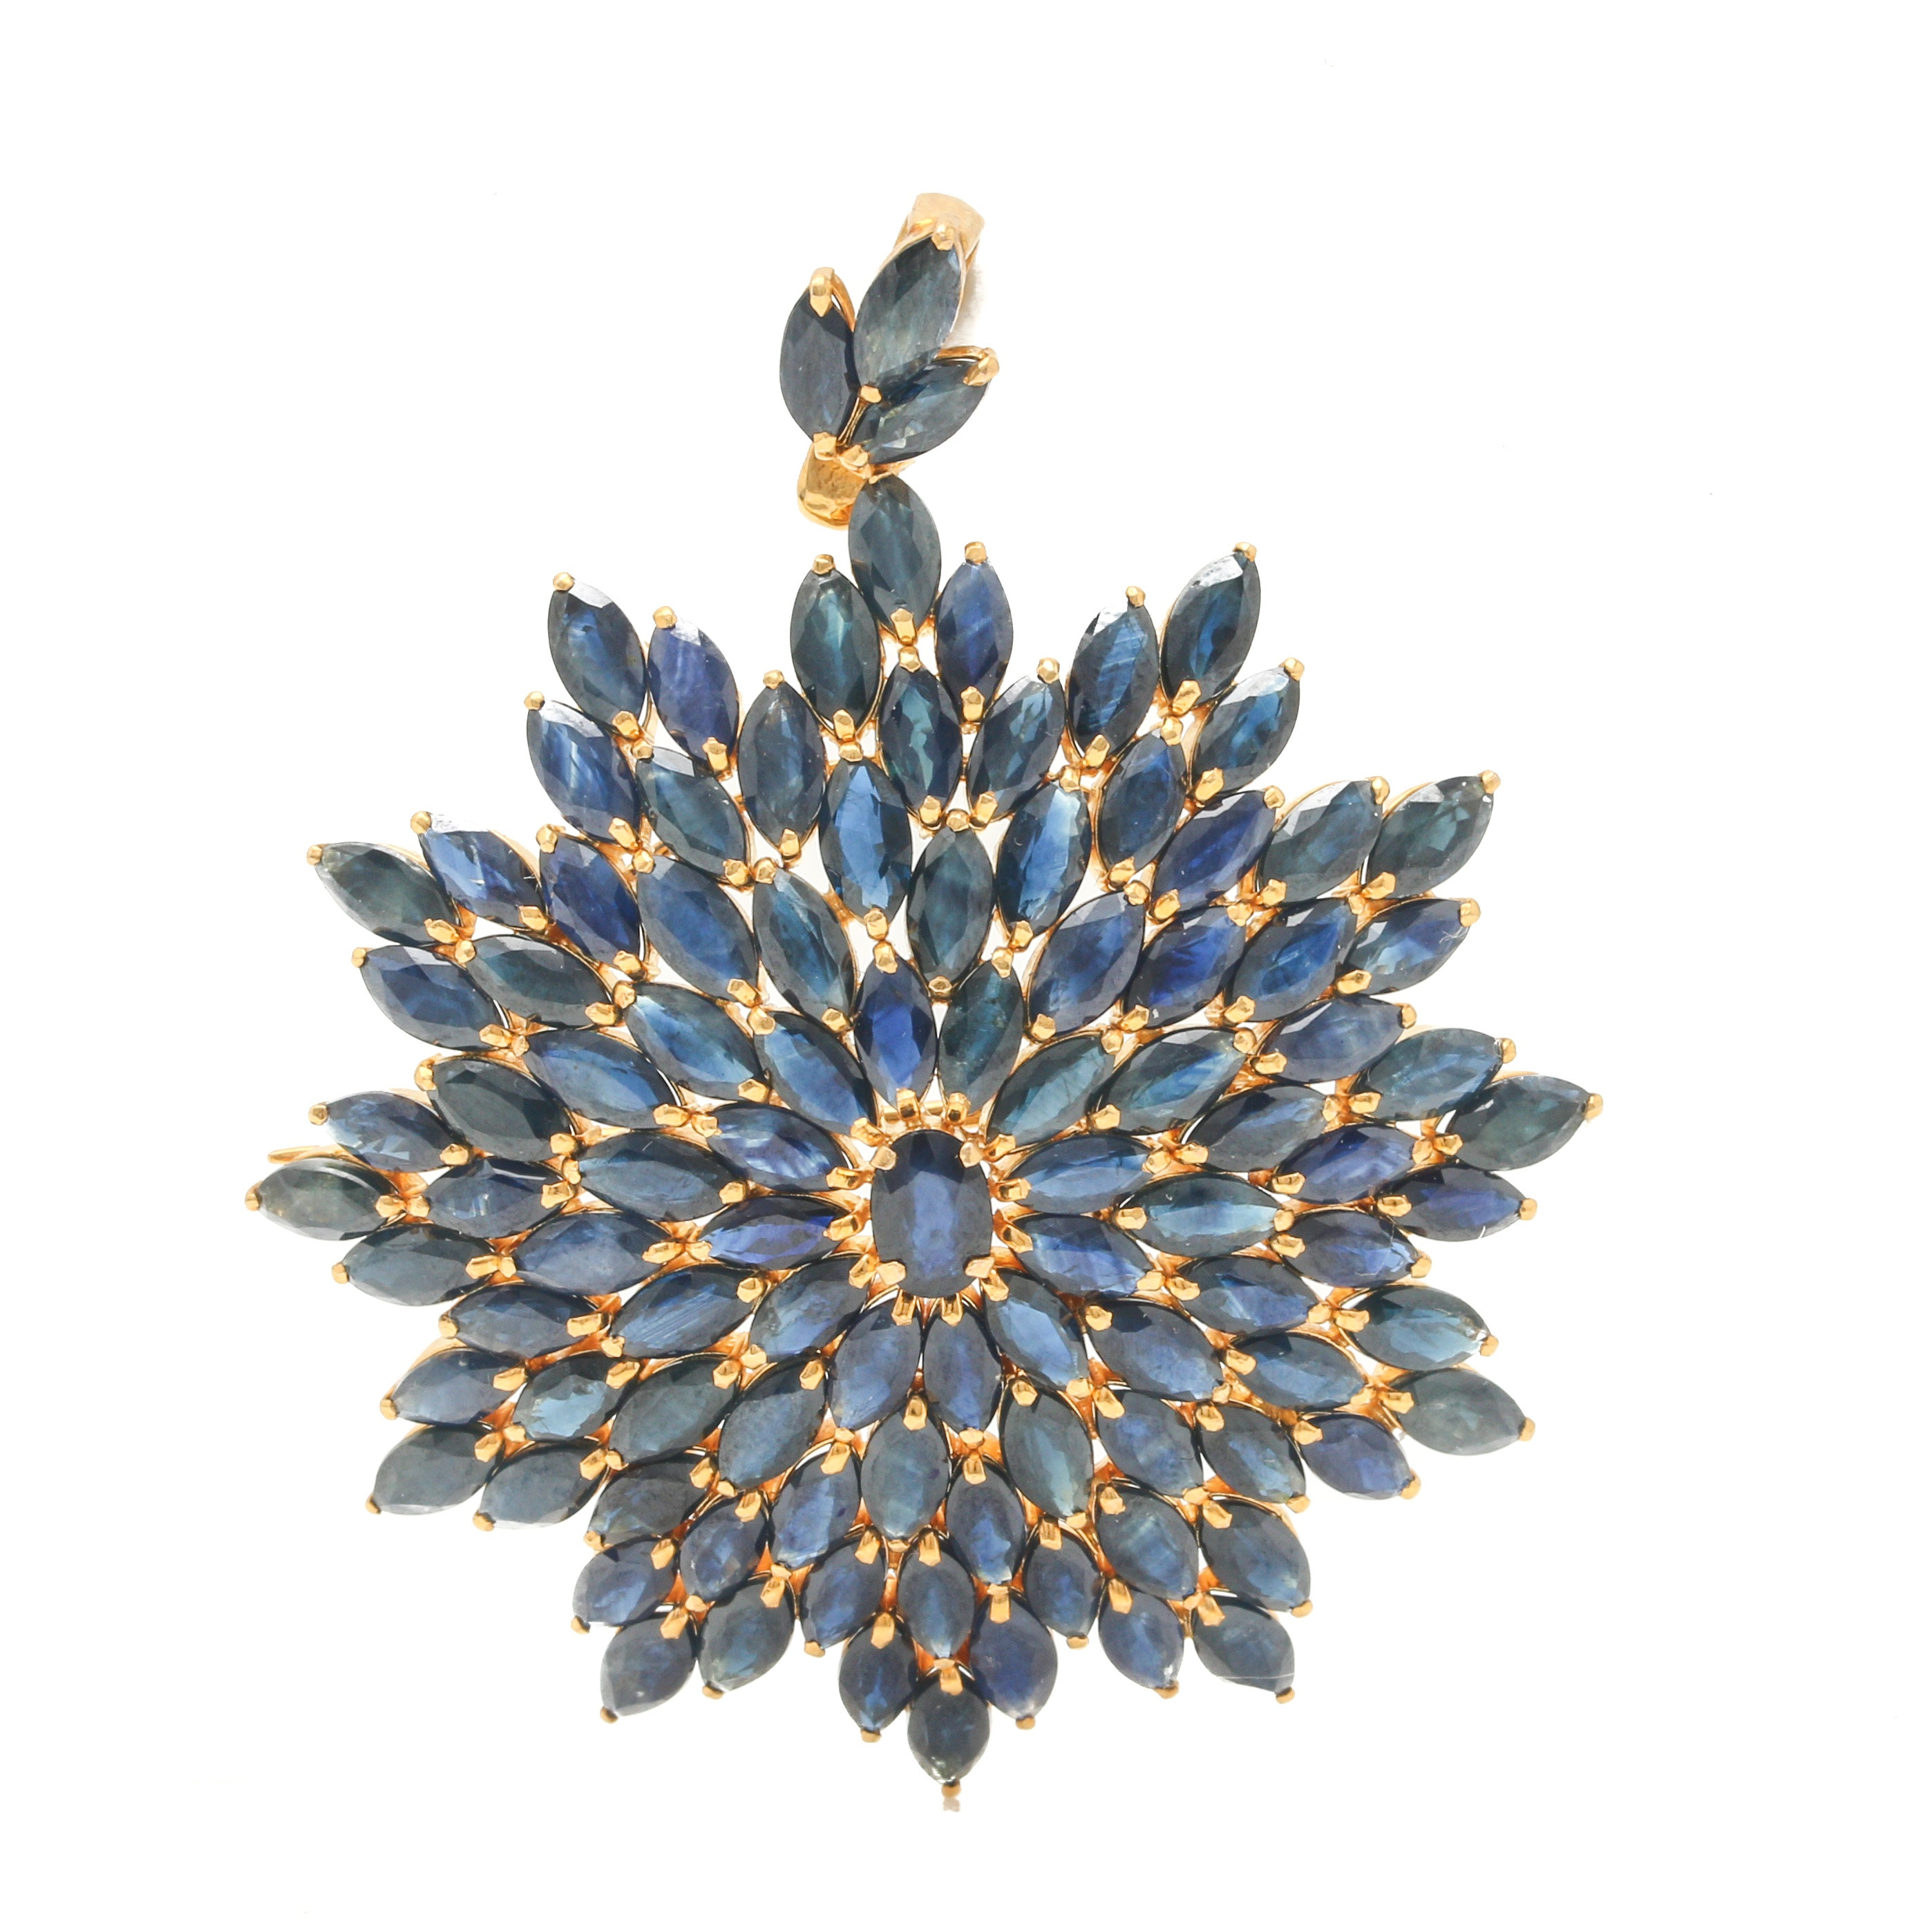 14K Yellow Gold Sapphire Floral Pendant Brooch